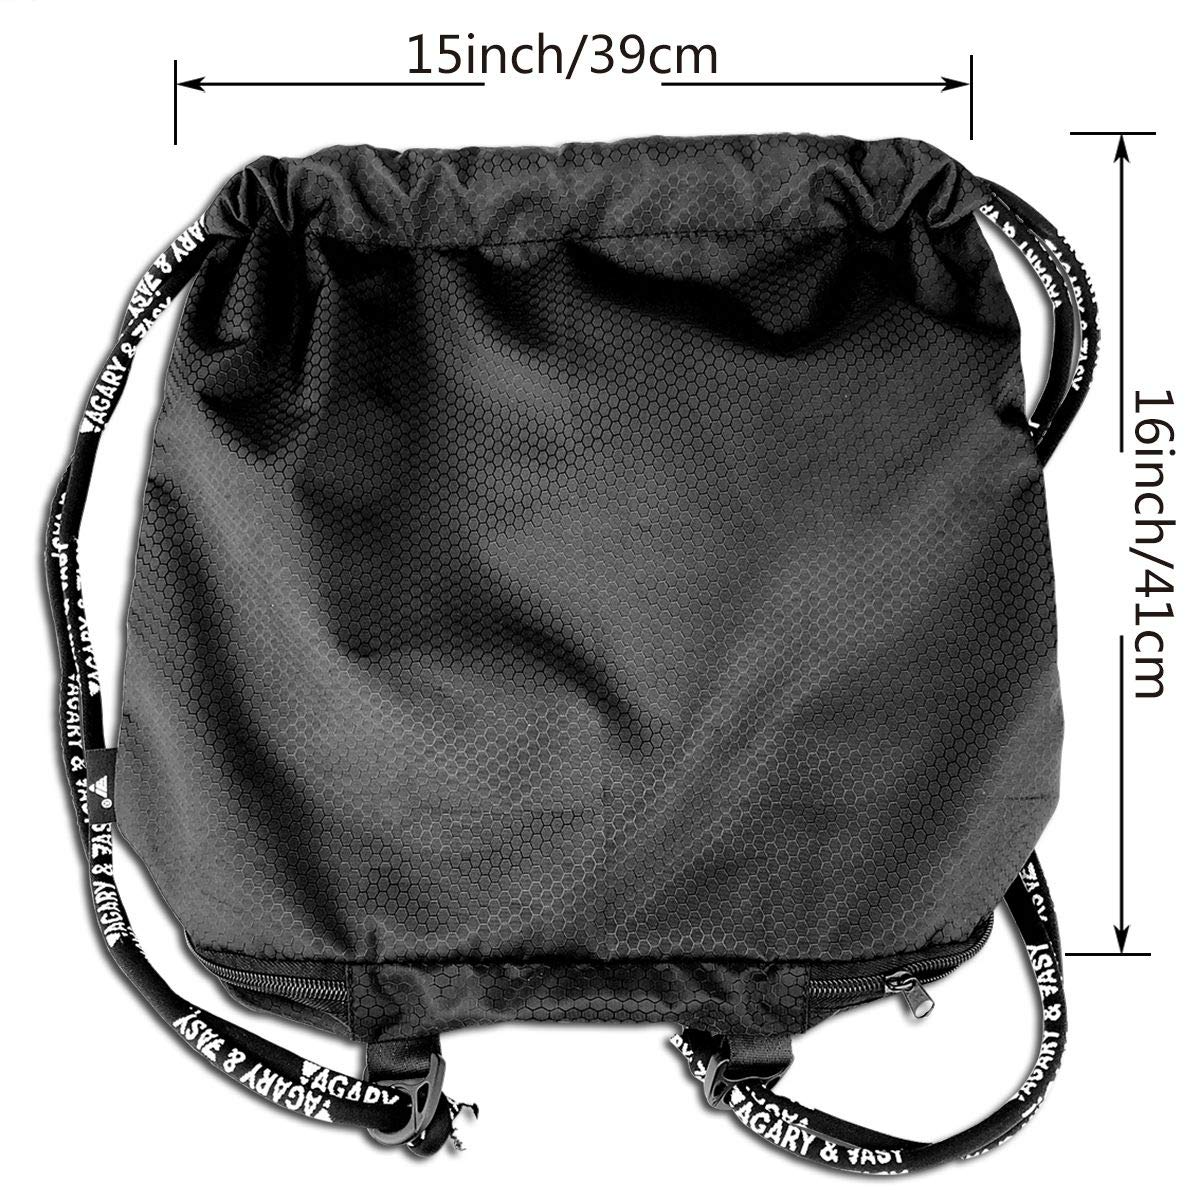 Floor Gethsemane Drawstring Backpack Sports Athletic Gym Cinch Sack String Storage Bags for Hiking Travel Beach